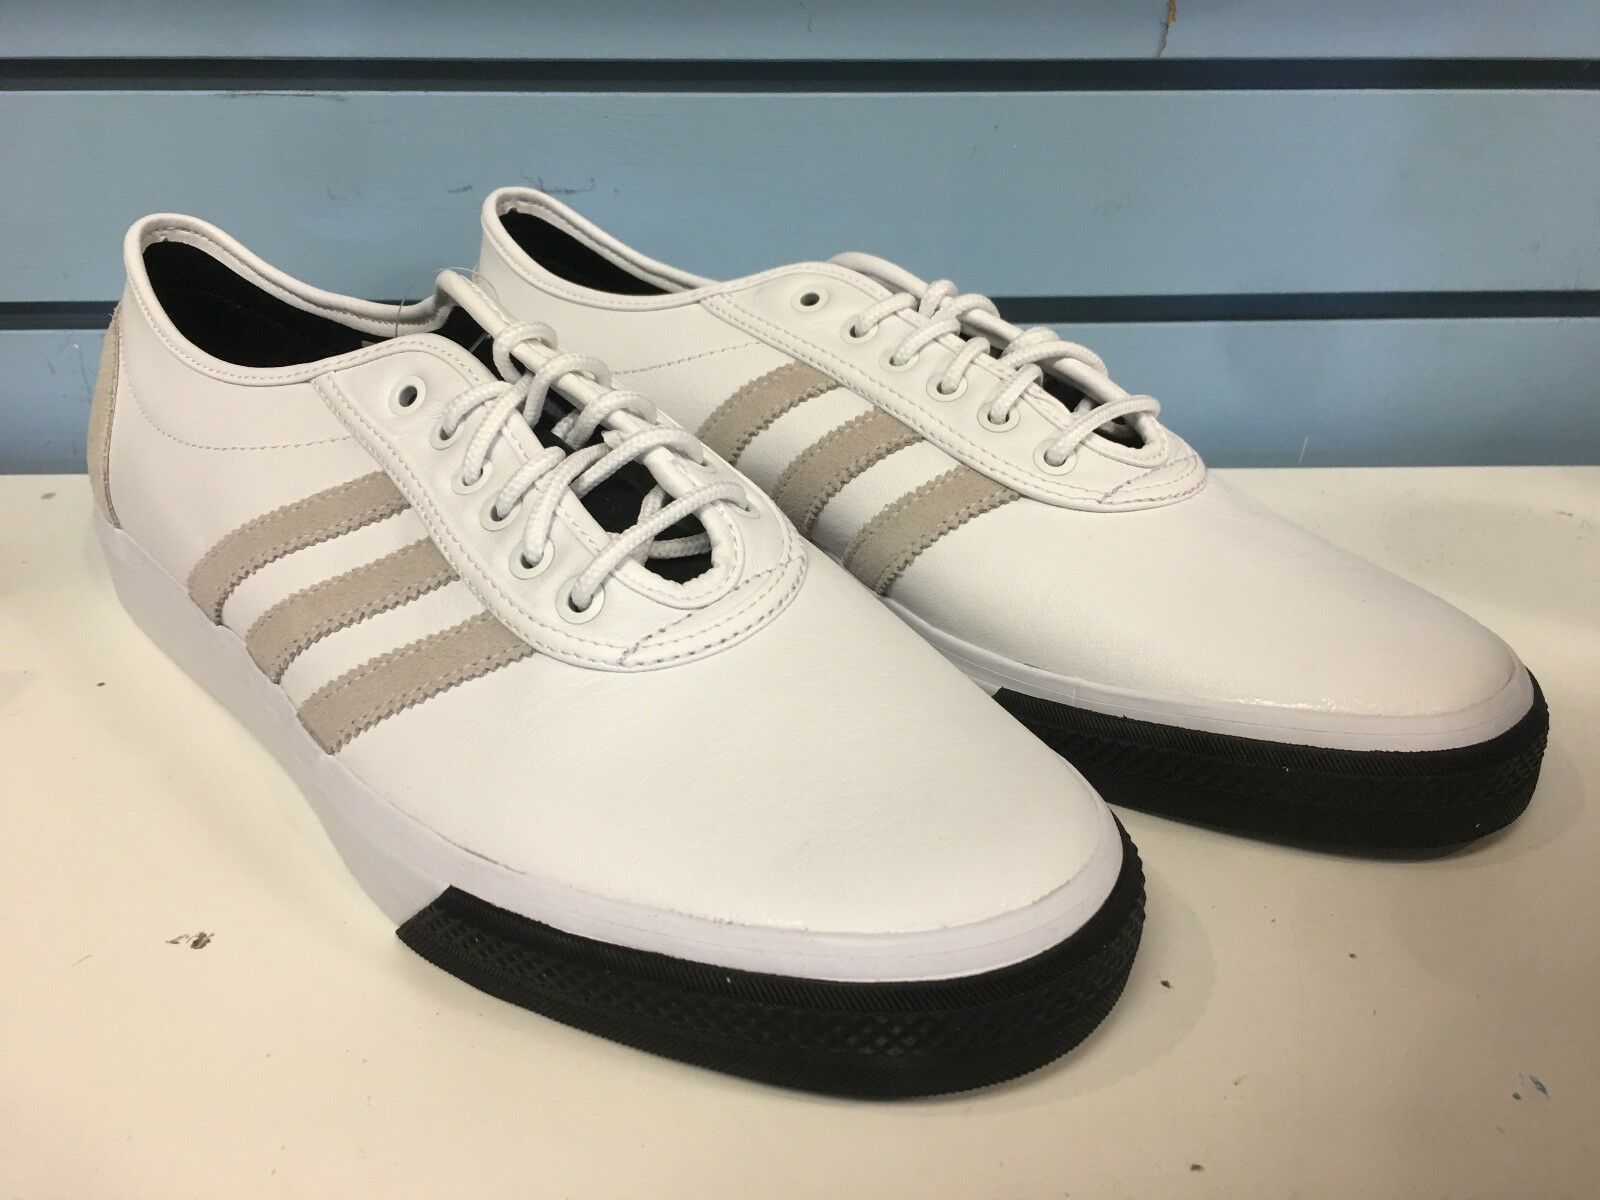 ADIDAS ADI-EASE CLASSIFIED MENS 12 Cheap women's shoes women's shoes